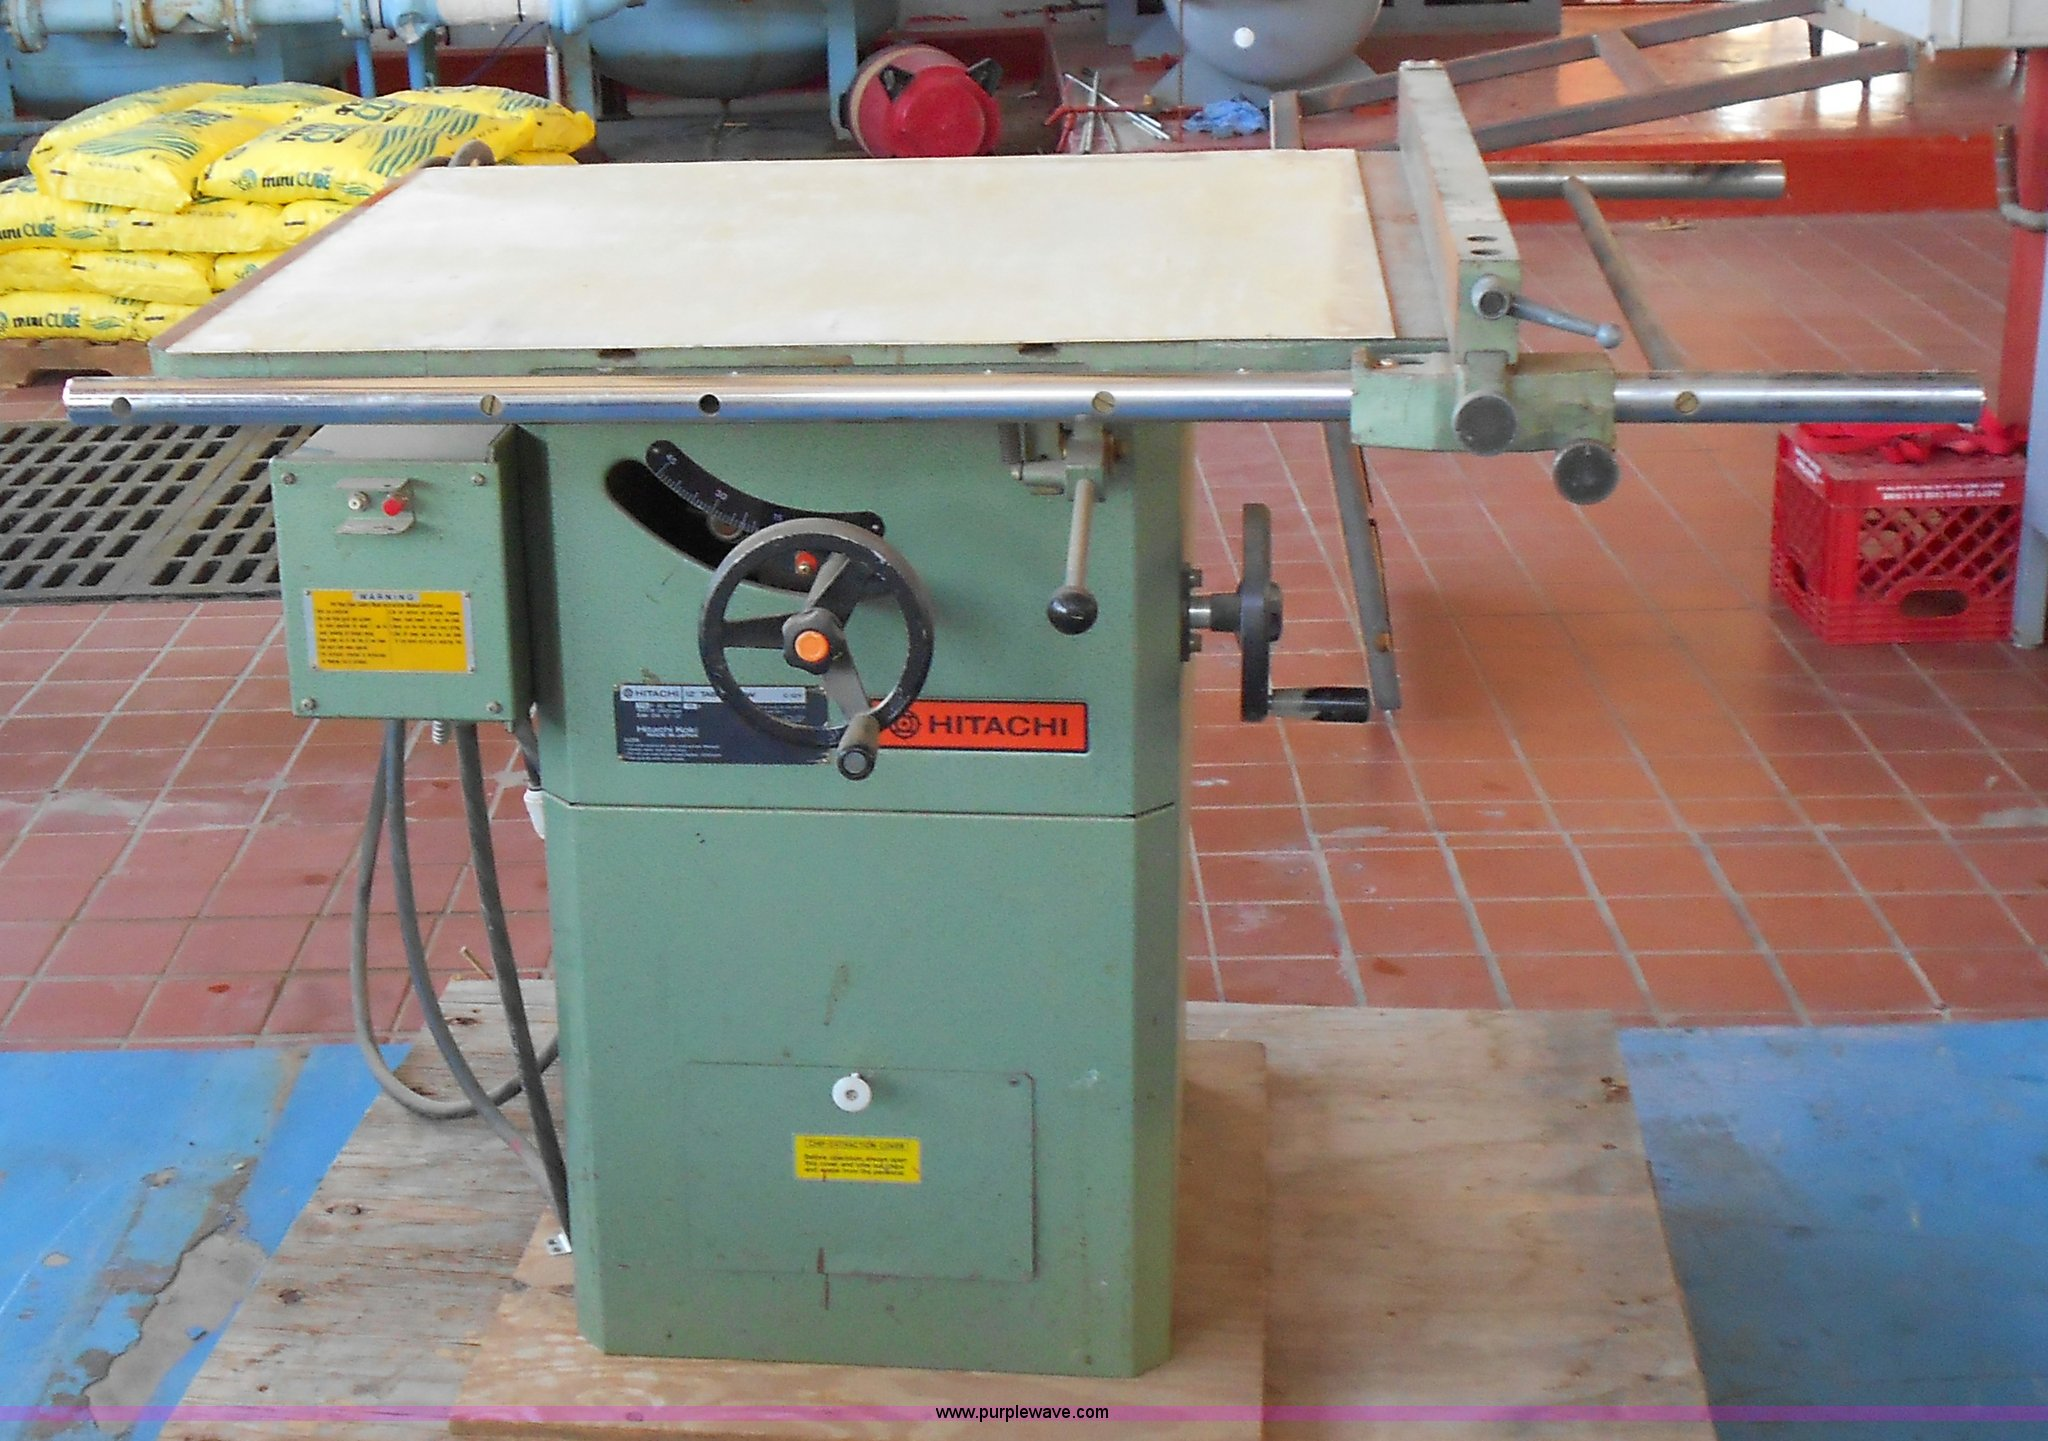 Hitachi table saw item d9082 sold november 8 government d9082 image for item d9082 hitachi table saw greentooth Gallery